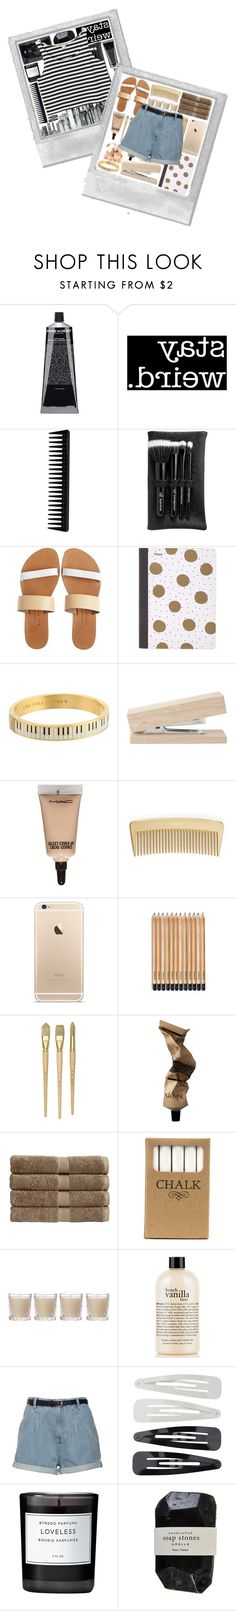 """""""Stay Weird"""" by dial-a-for-amine ❤ liked on Polyvore featuring Grown Alchemist, GHD, e.l.f., Isapera, Mead, Kate Spade, MAC Cosmetics, AERIN, Aesop and Christy"""